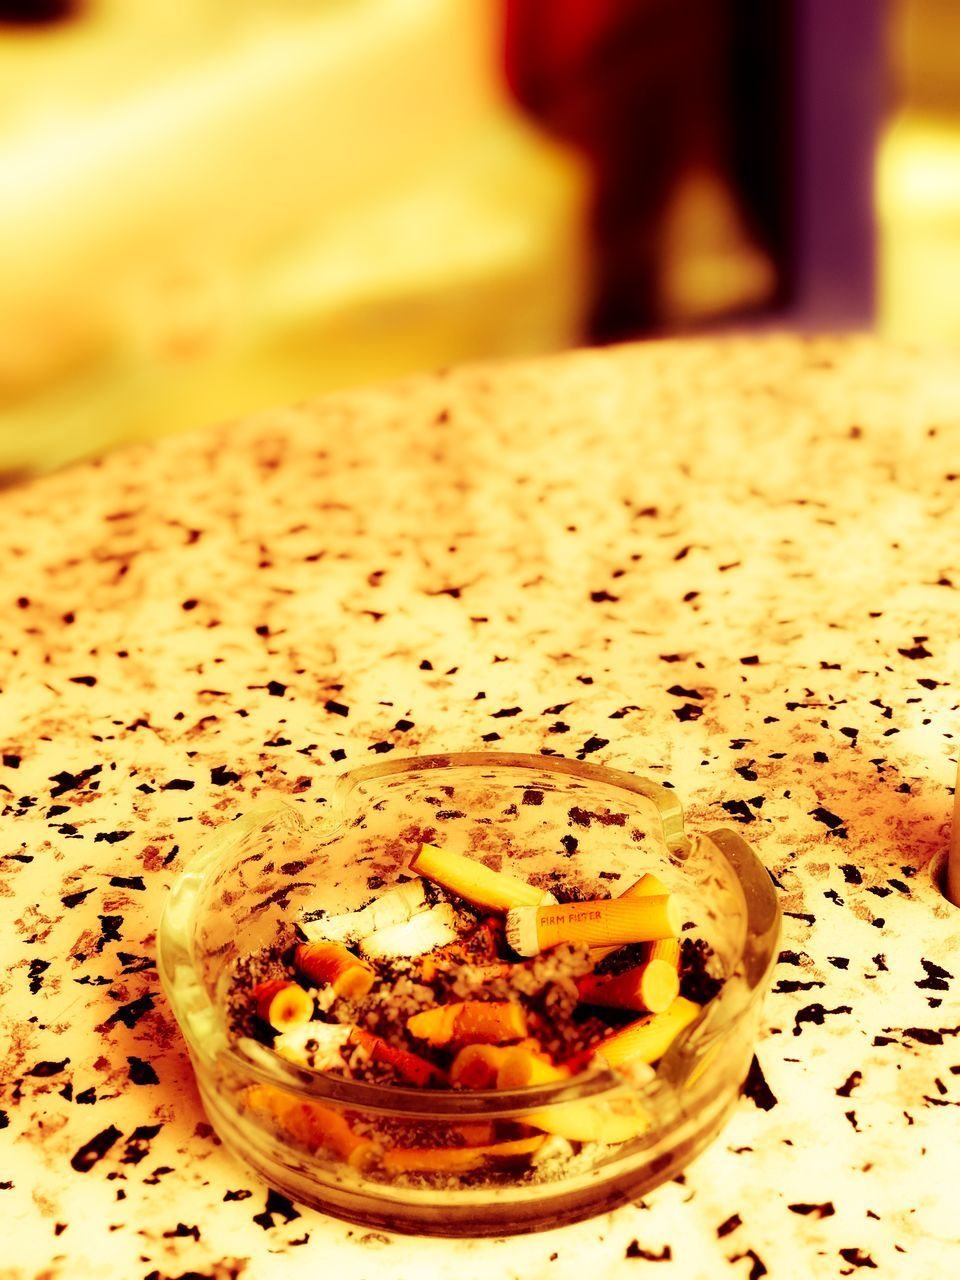 food and drink, indoors, table, food, close-up, no people, ash, freshness, day